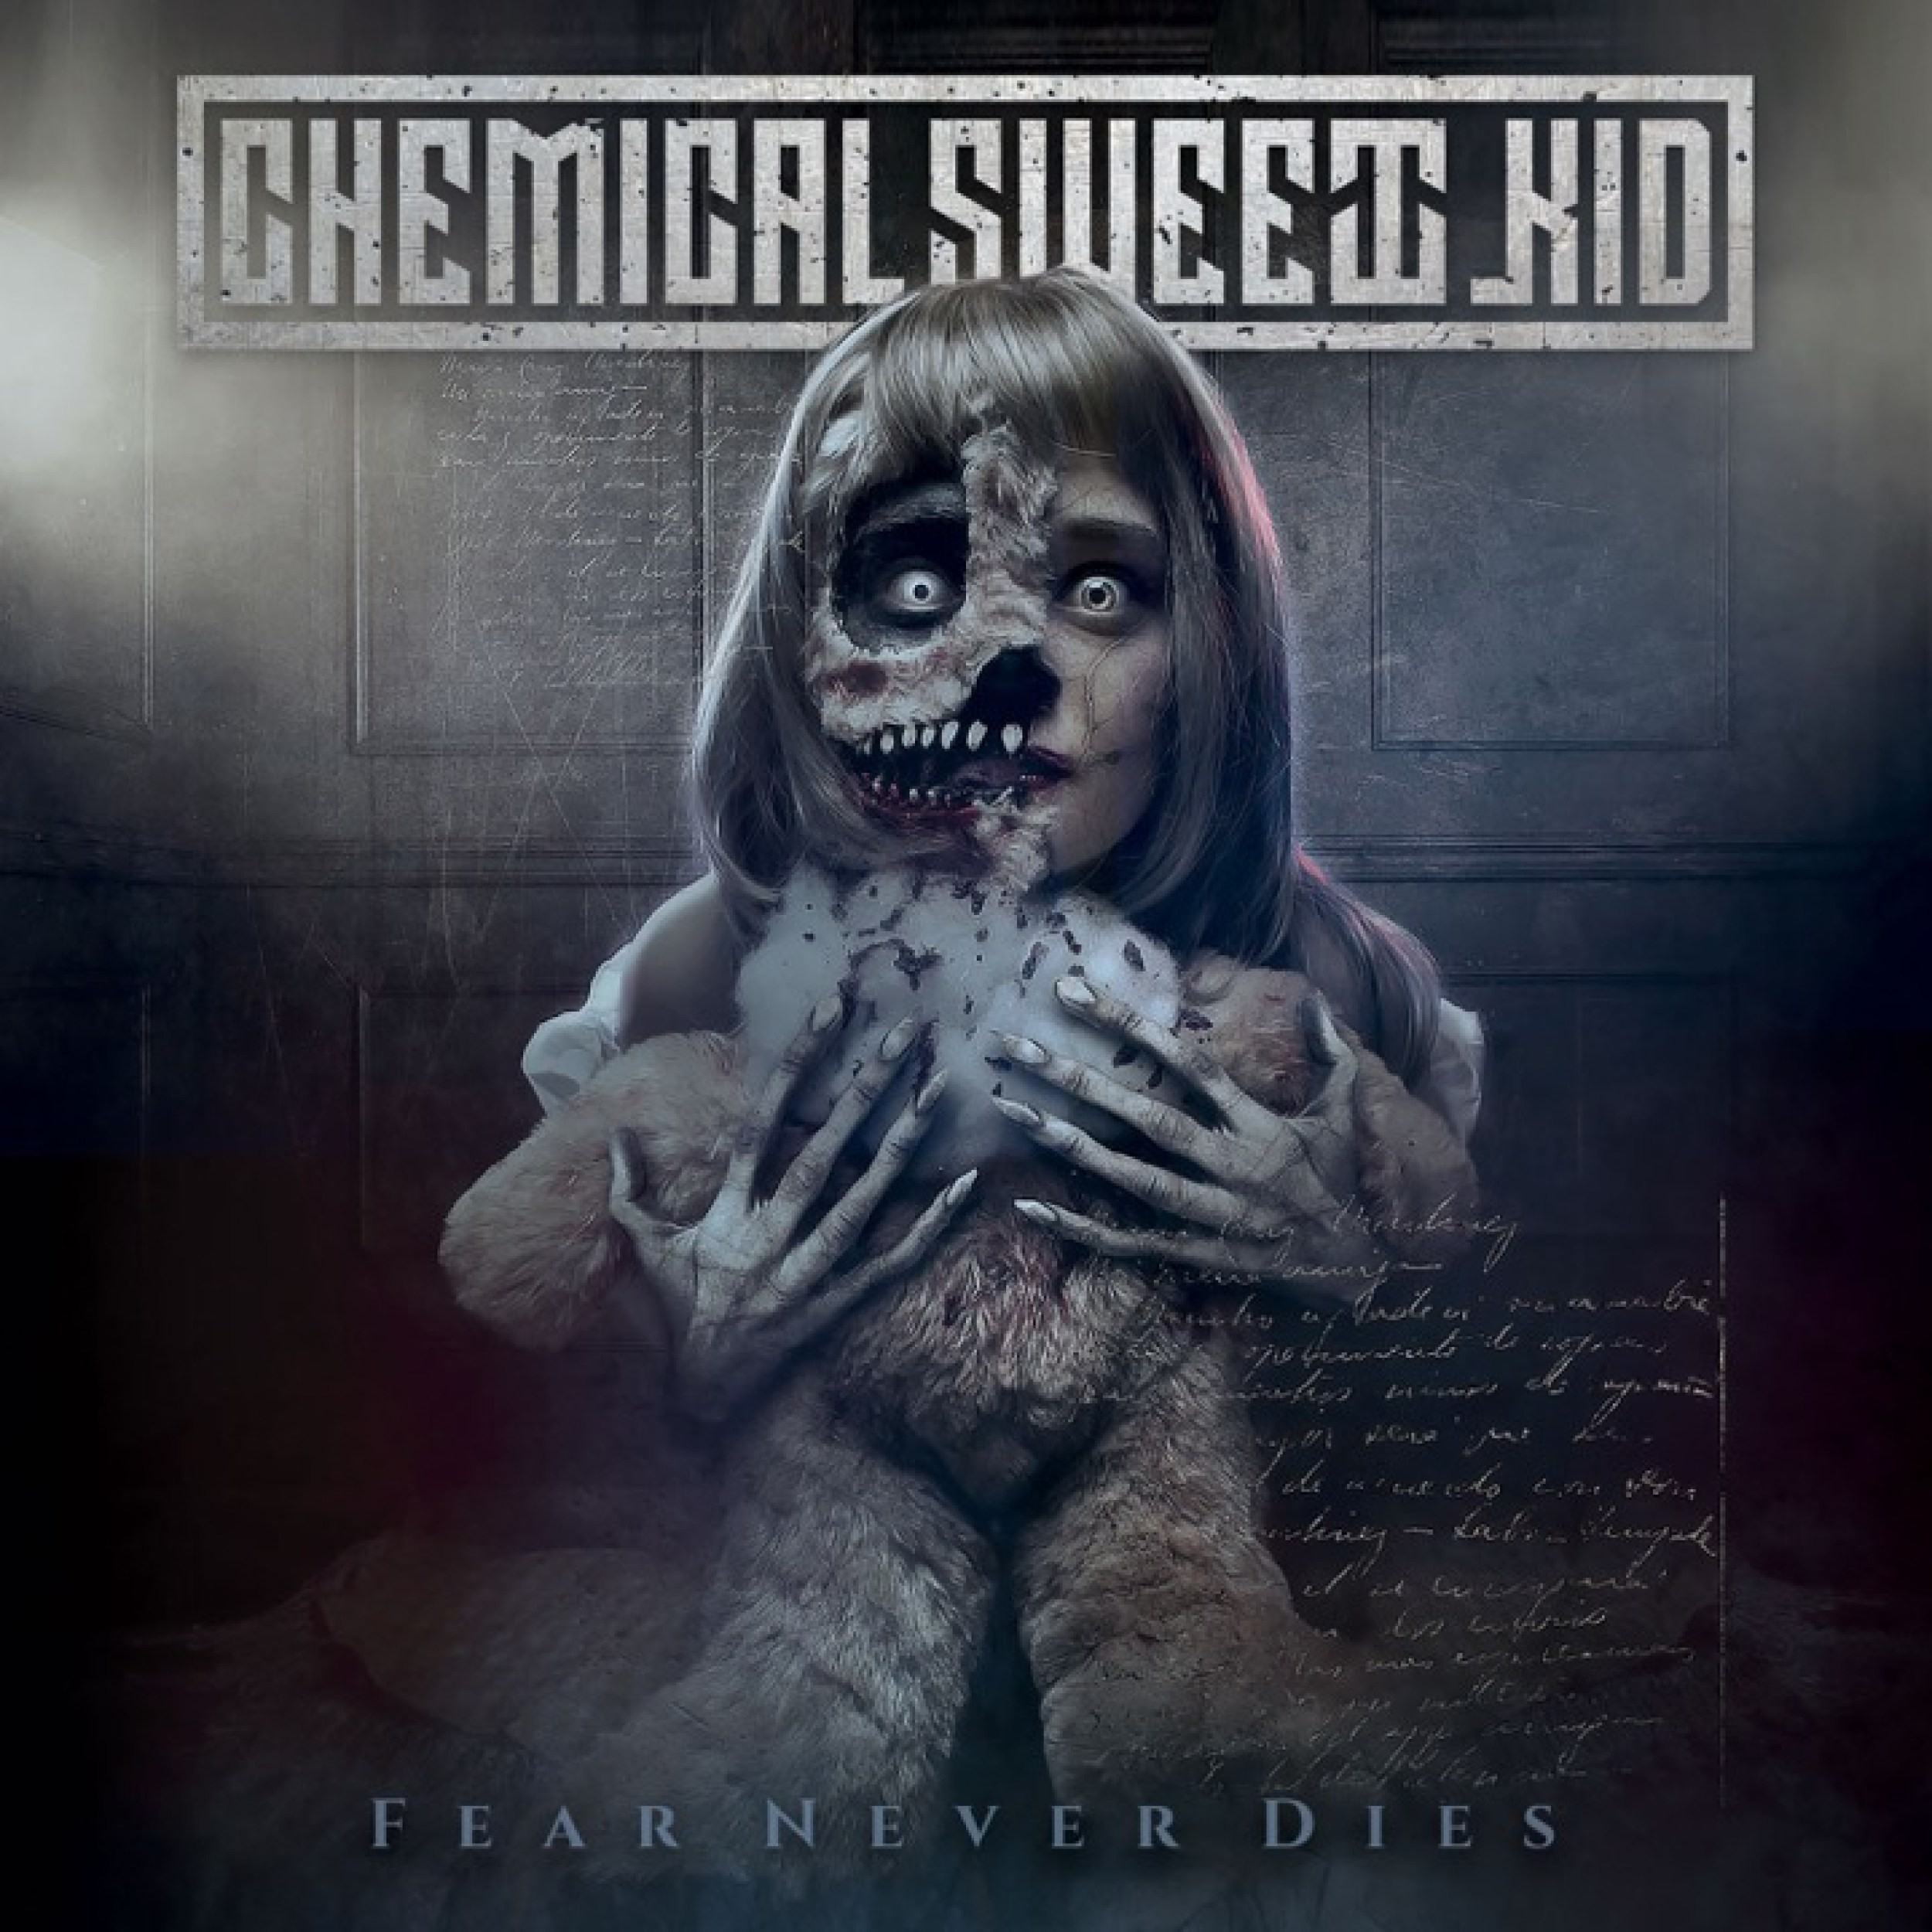 Chemical Sweet Kid - Fear Never Dies - CD